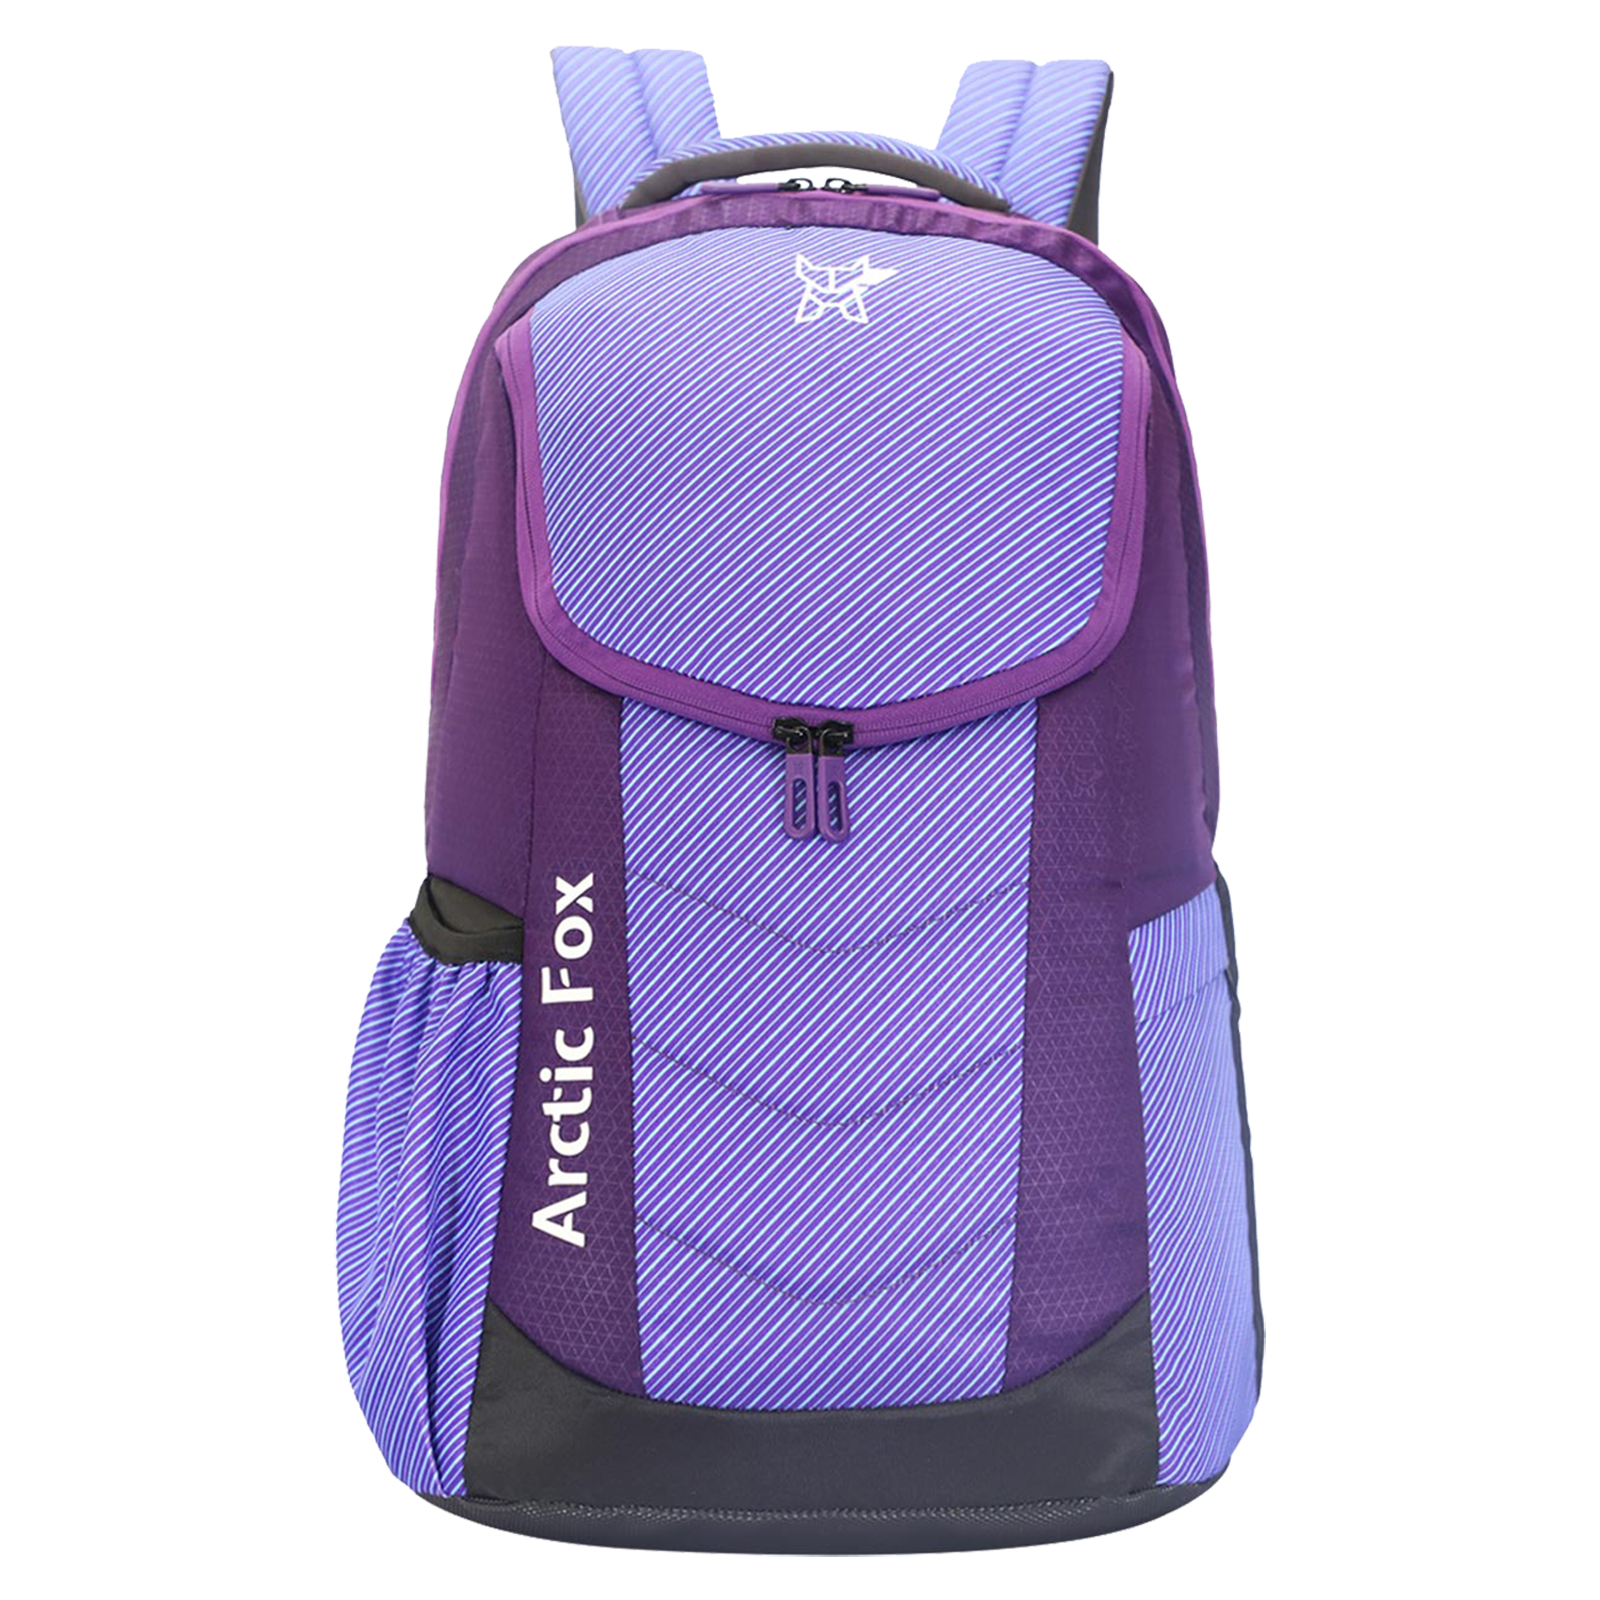 Arctic Fox Combat 37 Litres PU Coated Polyester Backpack (3 Spacious Compartments, FTEBPKPETON072037, Petunia Purple)_1